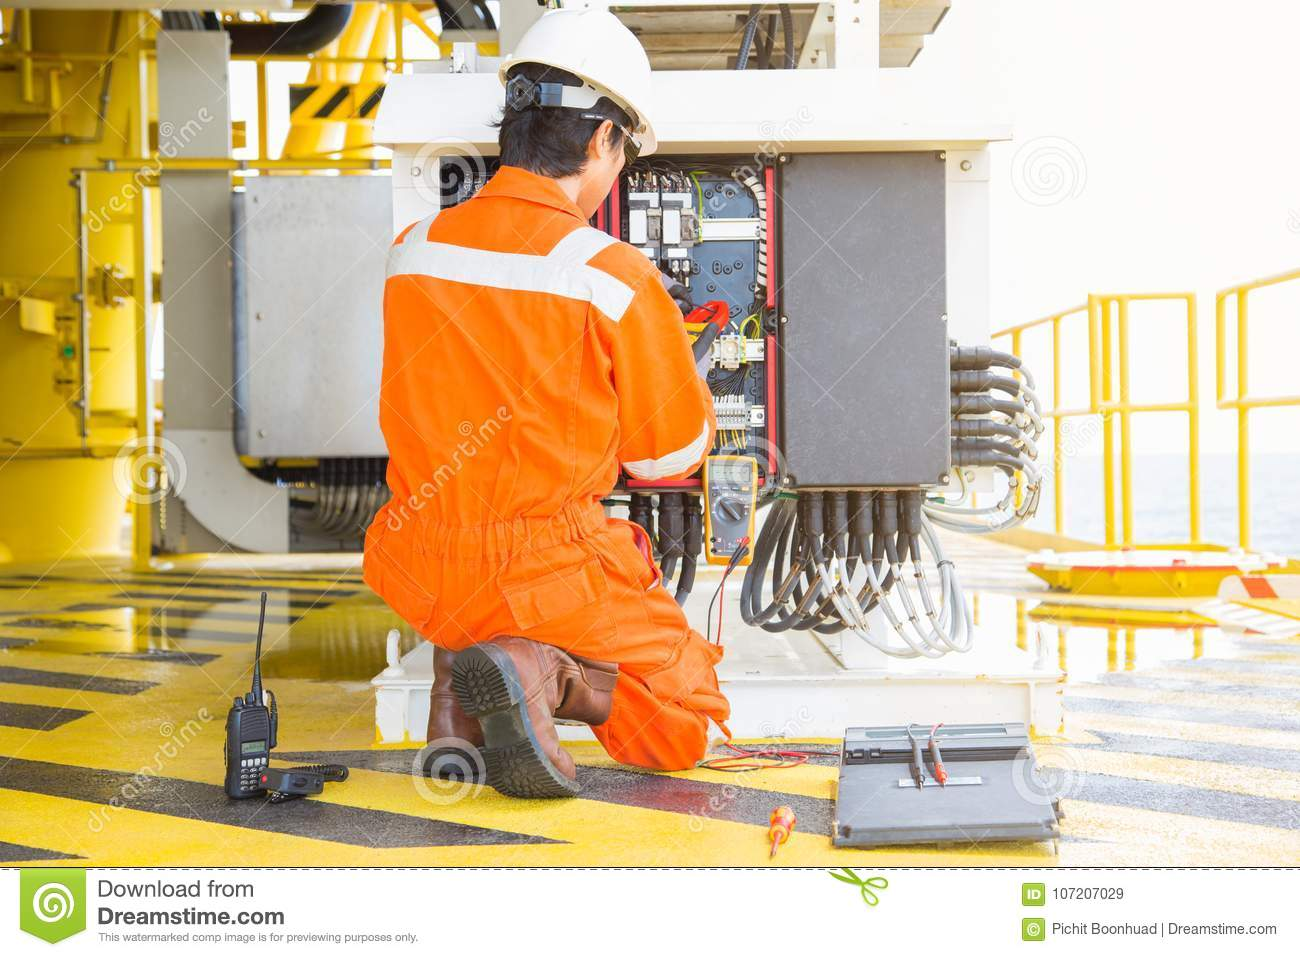 Electrical and instrument worker inspect and checking voltage and current of electric system at oil and gas platform for preventiv